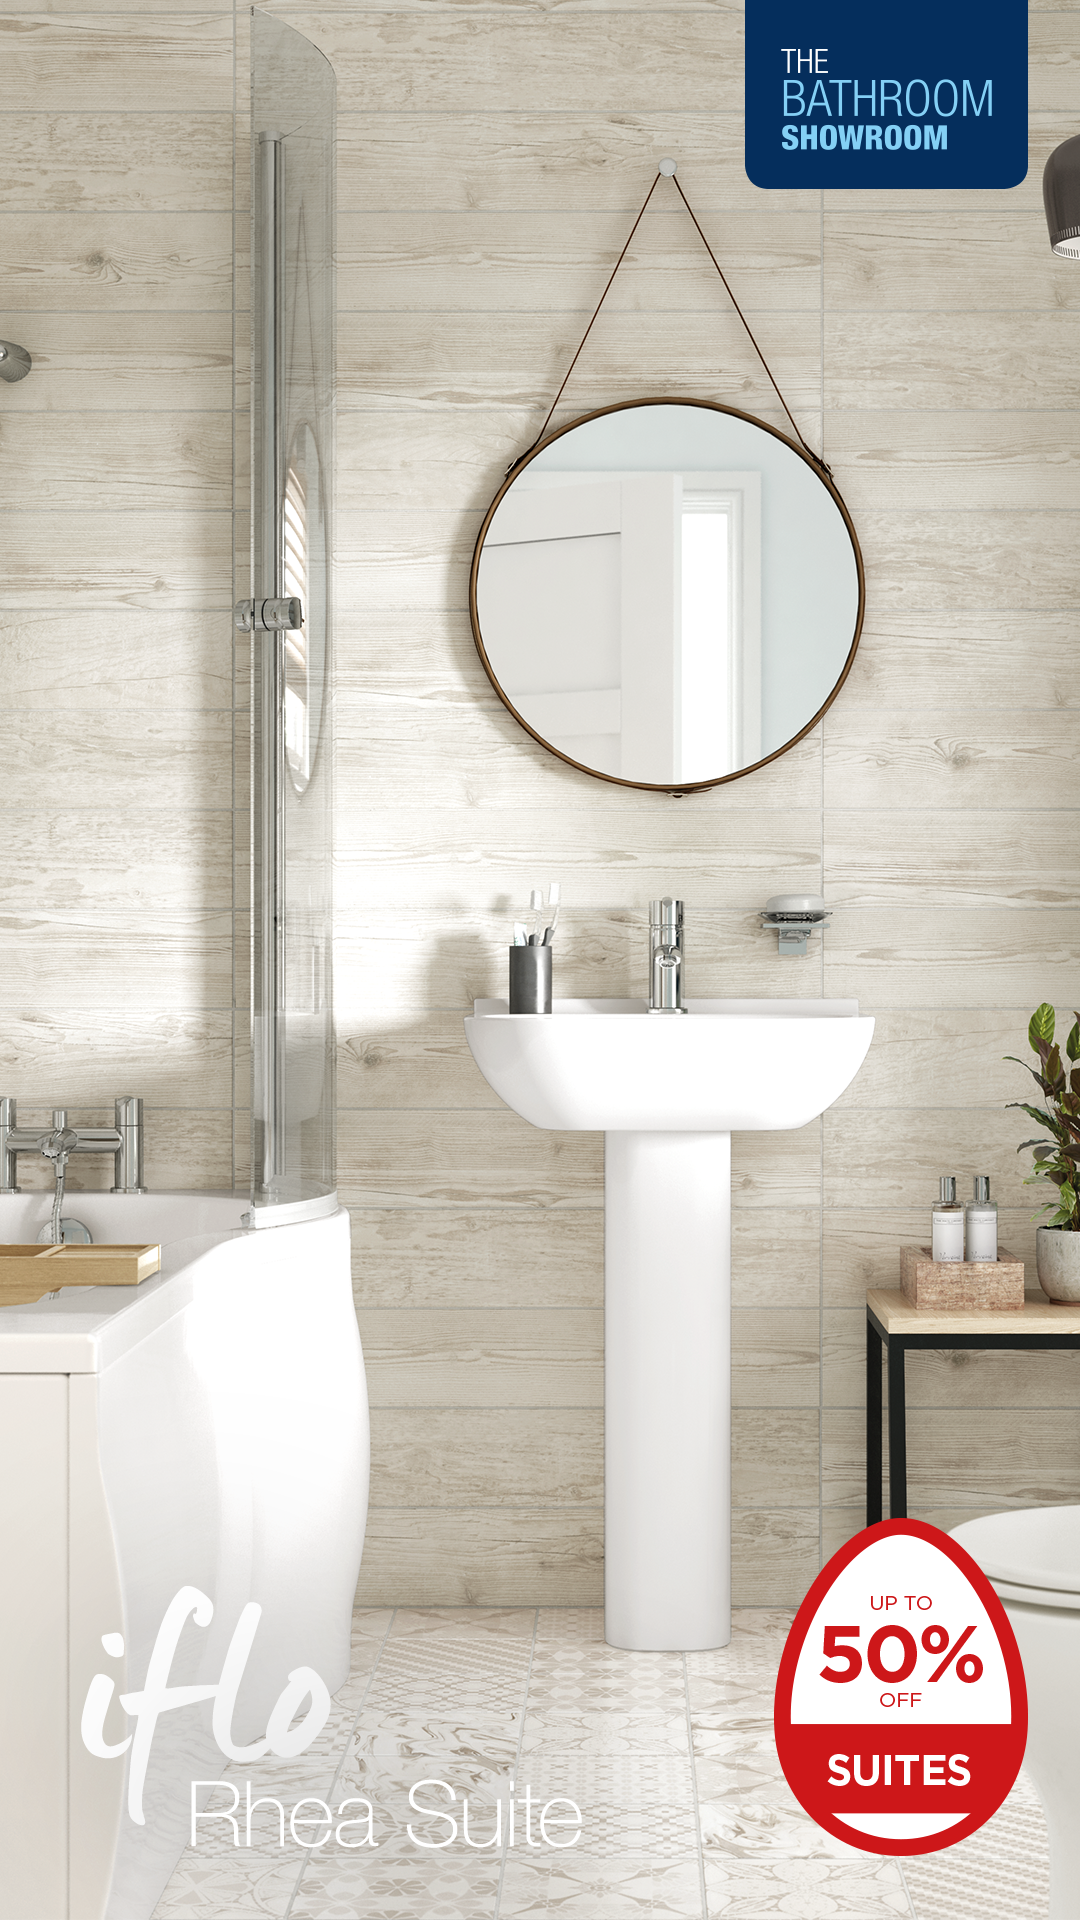 The Bathroom Showroom Are Offering Up To 50 Off Suites This Easter Sale Make Your Dream Bathroom A Reality For Half The Price Bathroom Showrooms Next Bathroom Bathroom